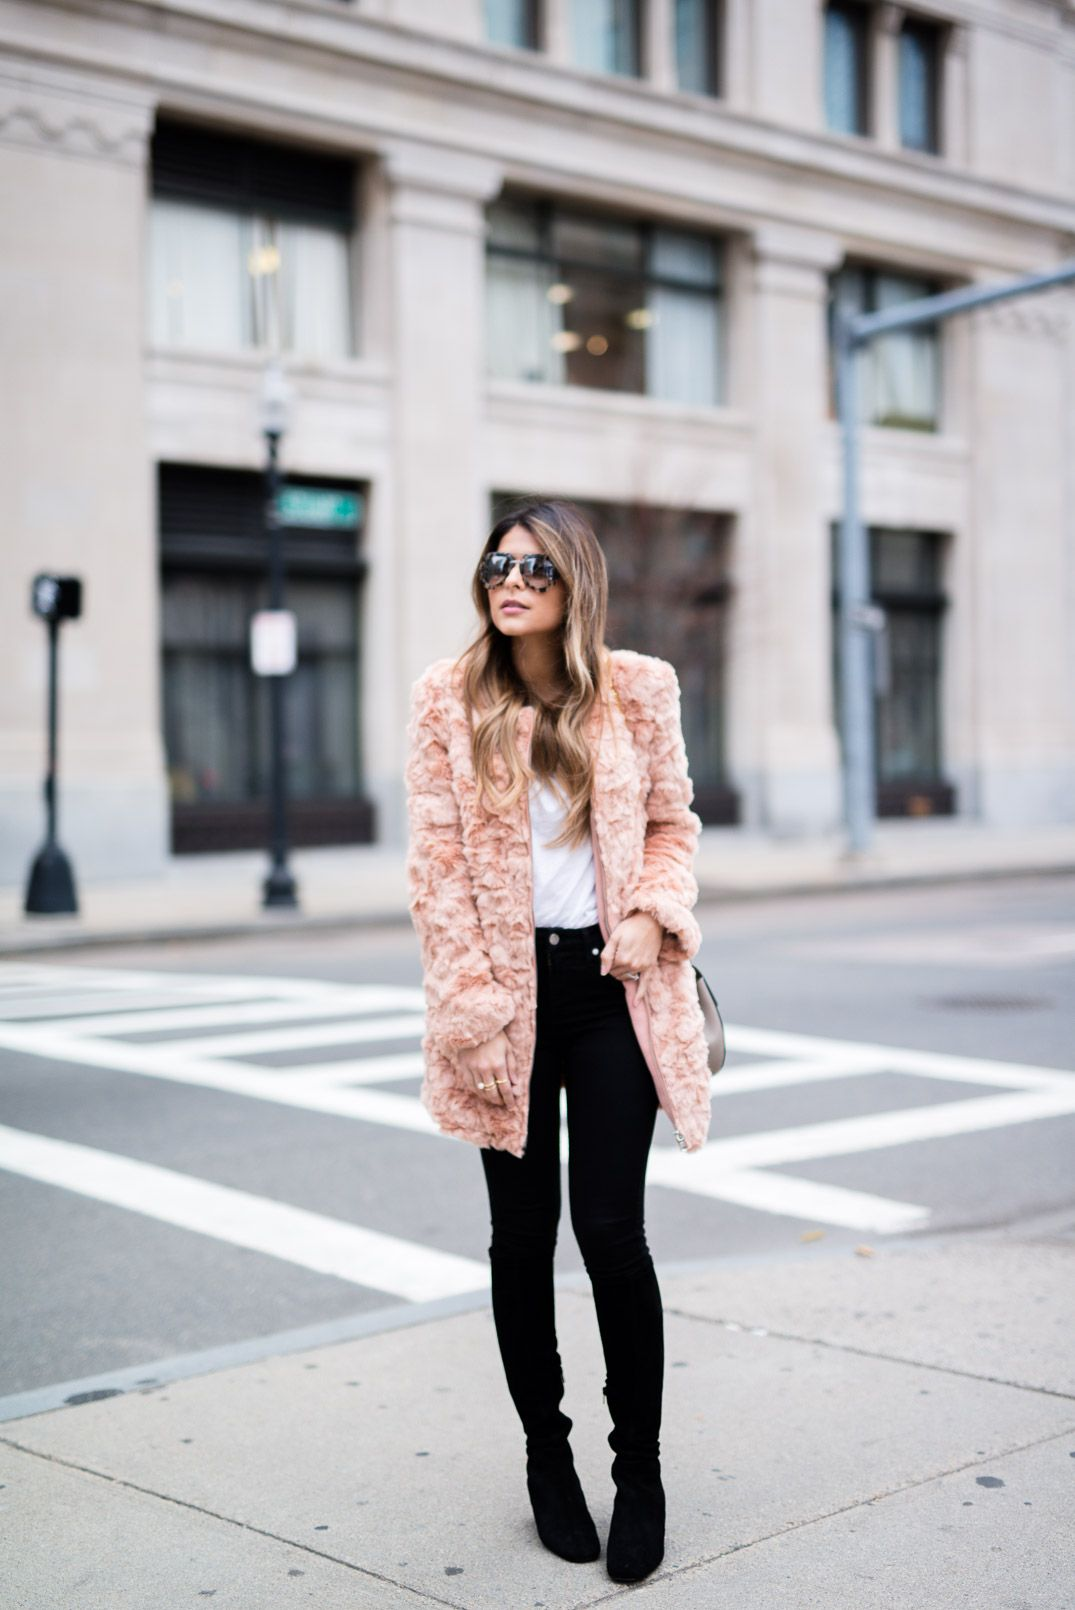 Pam Hetlinger wearing a Forever 21 Faux Fur Jacket, 7 for all Mankind black skinny jeans, delman boots, Chloé Drew Bag and Prada aviators